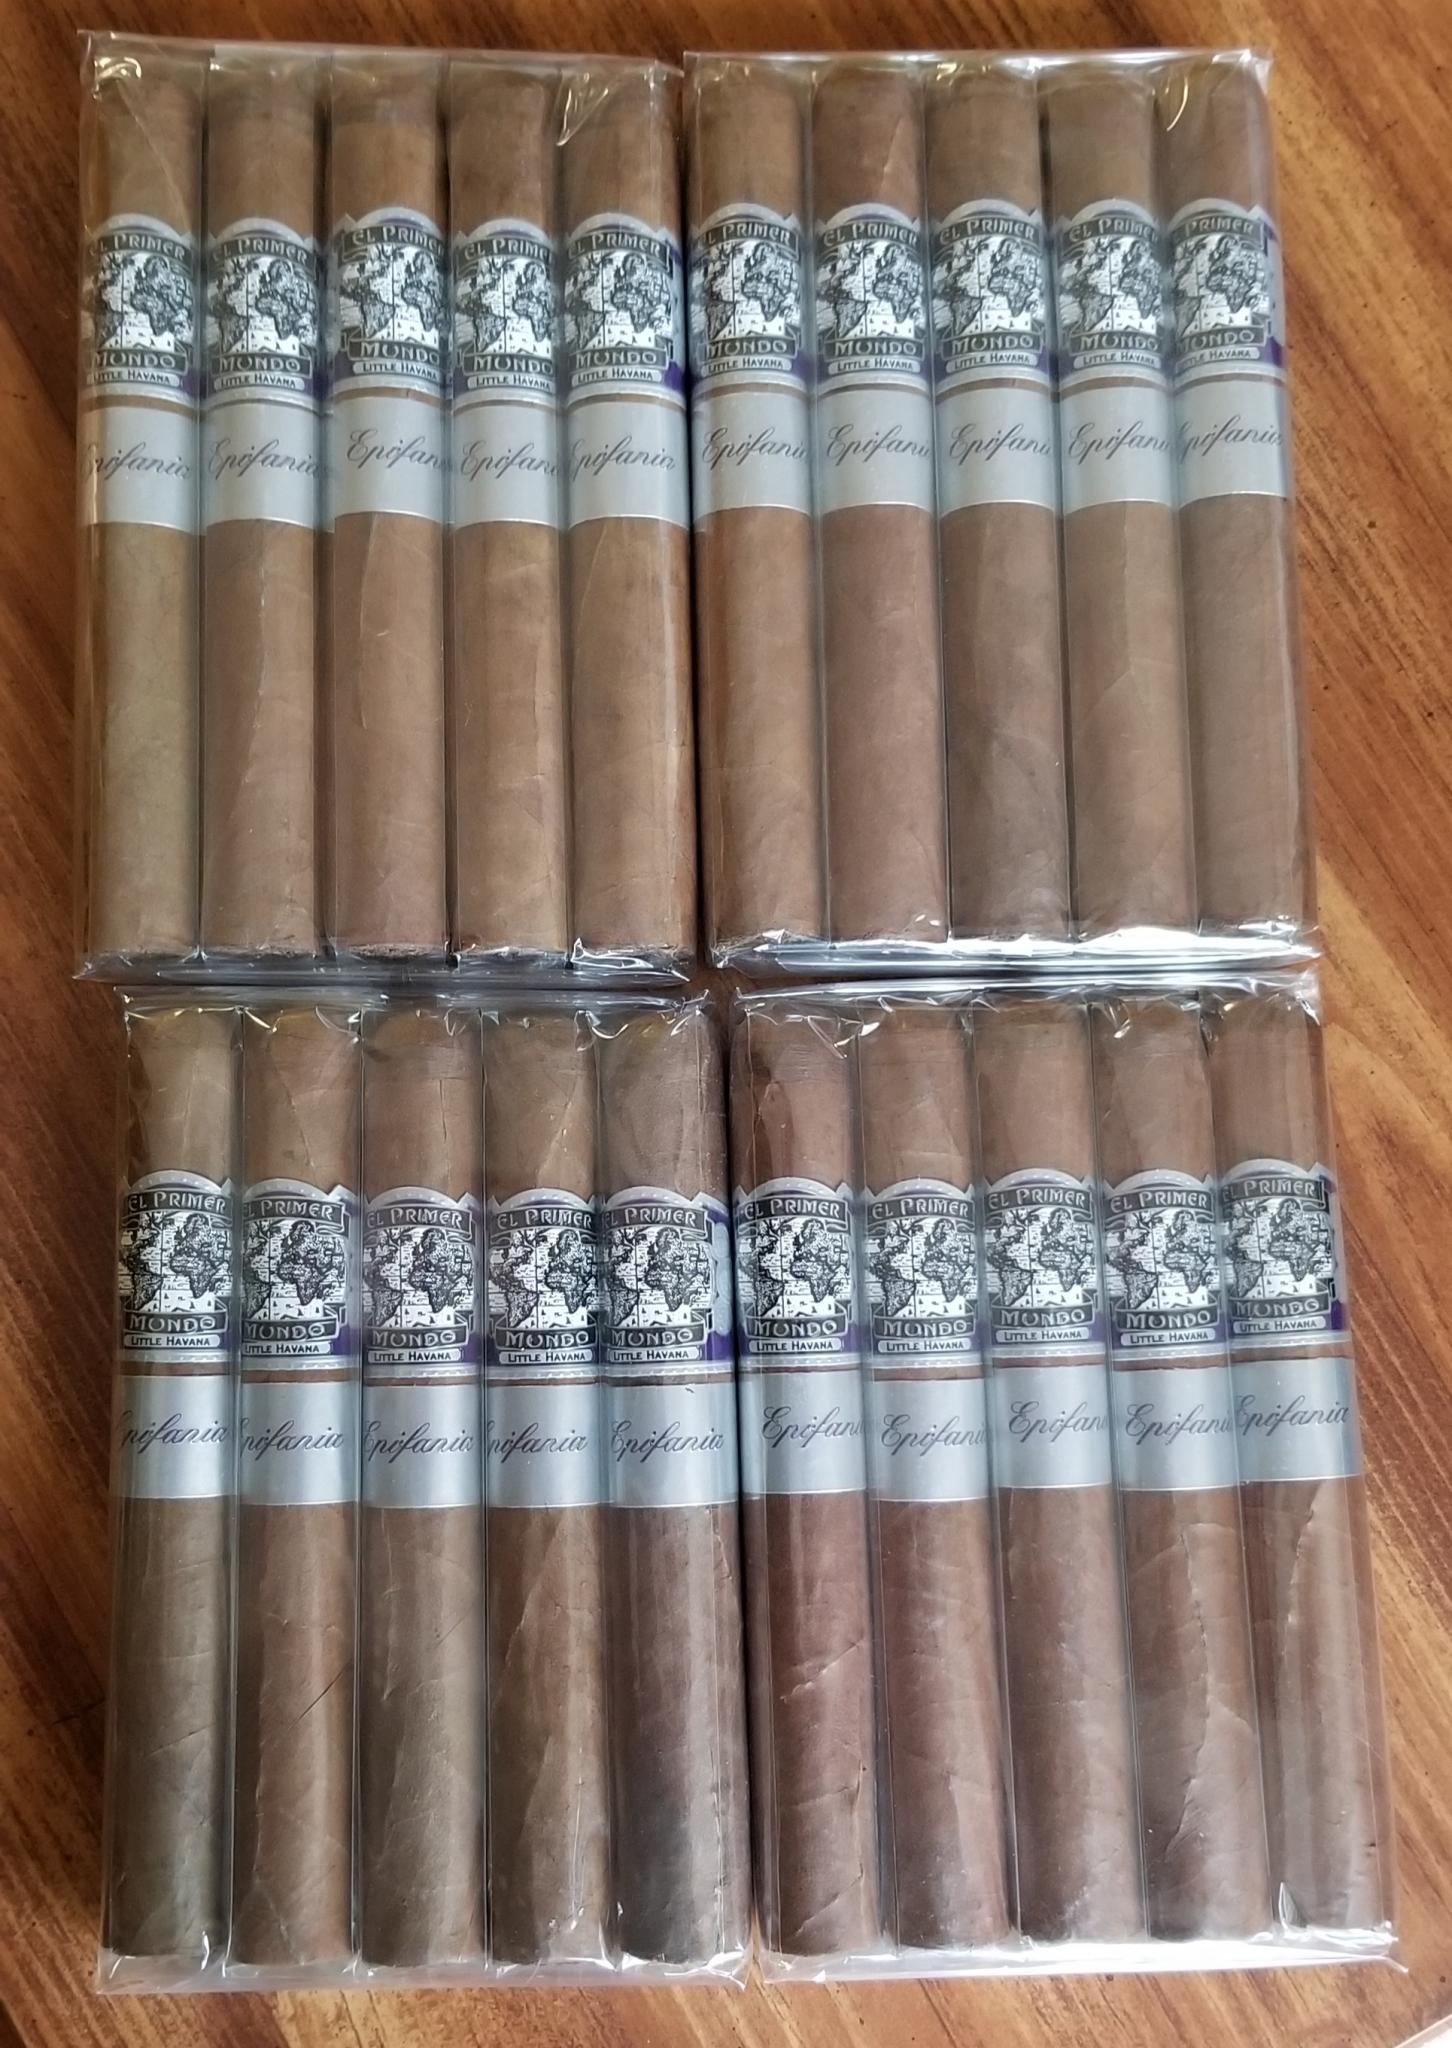 What's Your Latest Non-Cuban Purchase? II-20190630_153757_1561938577001.jpg